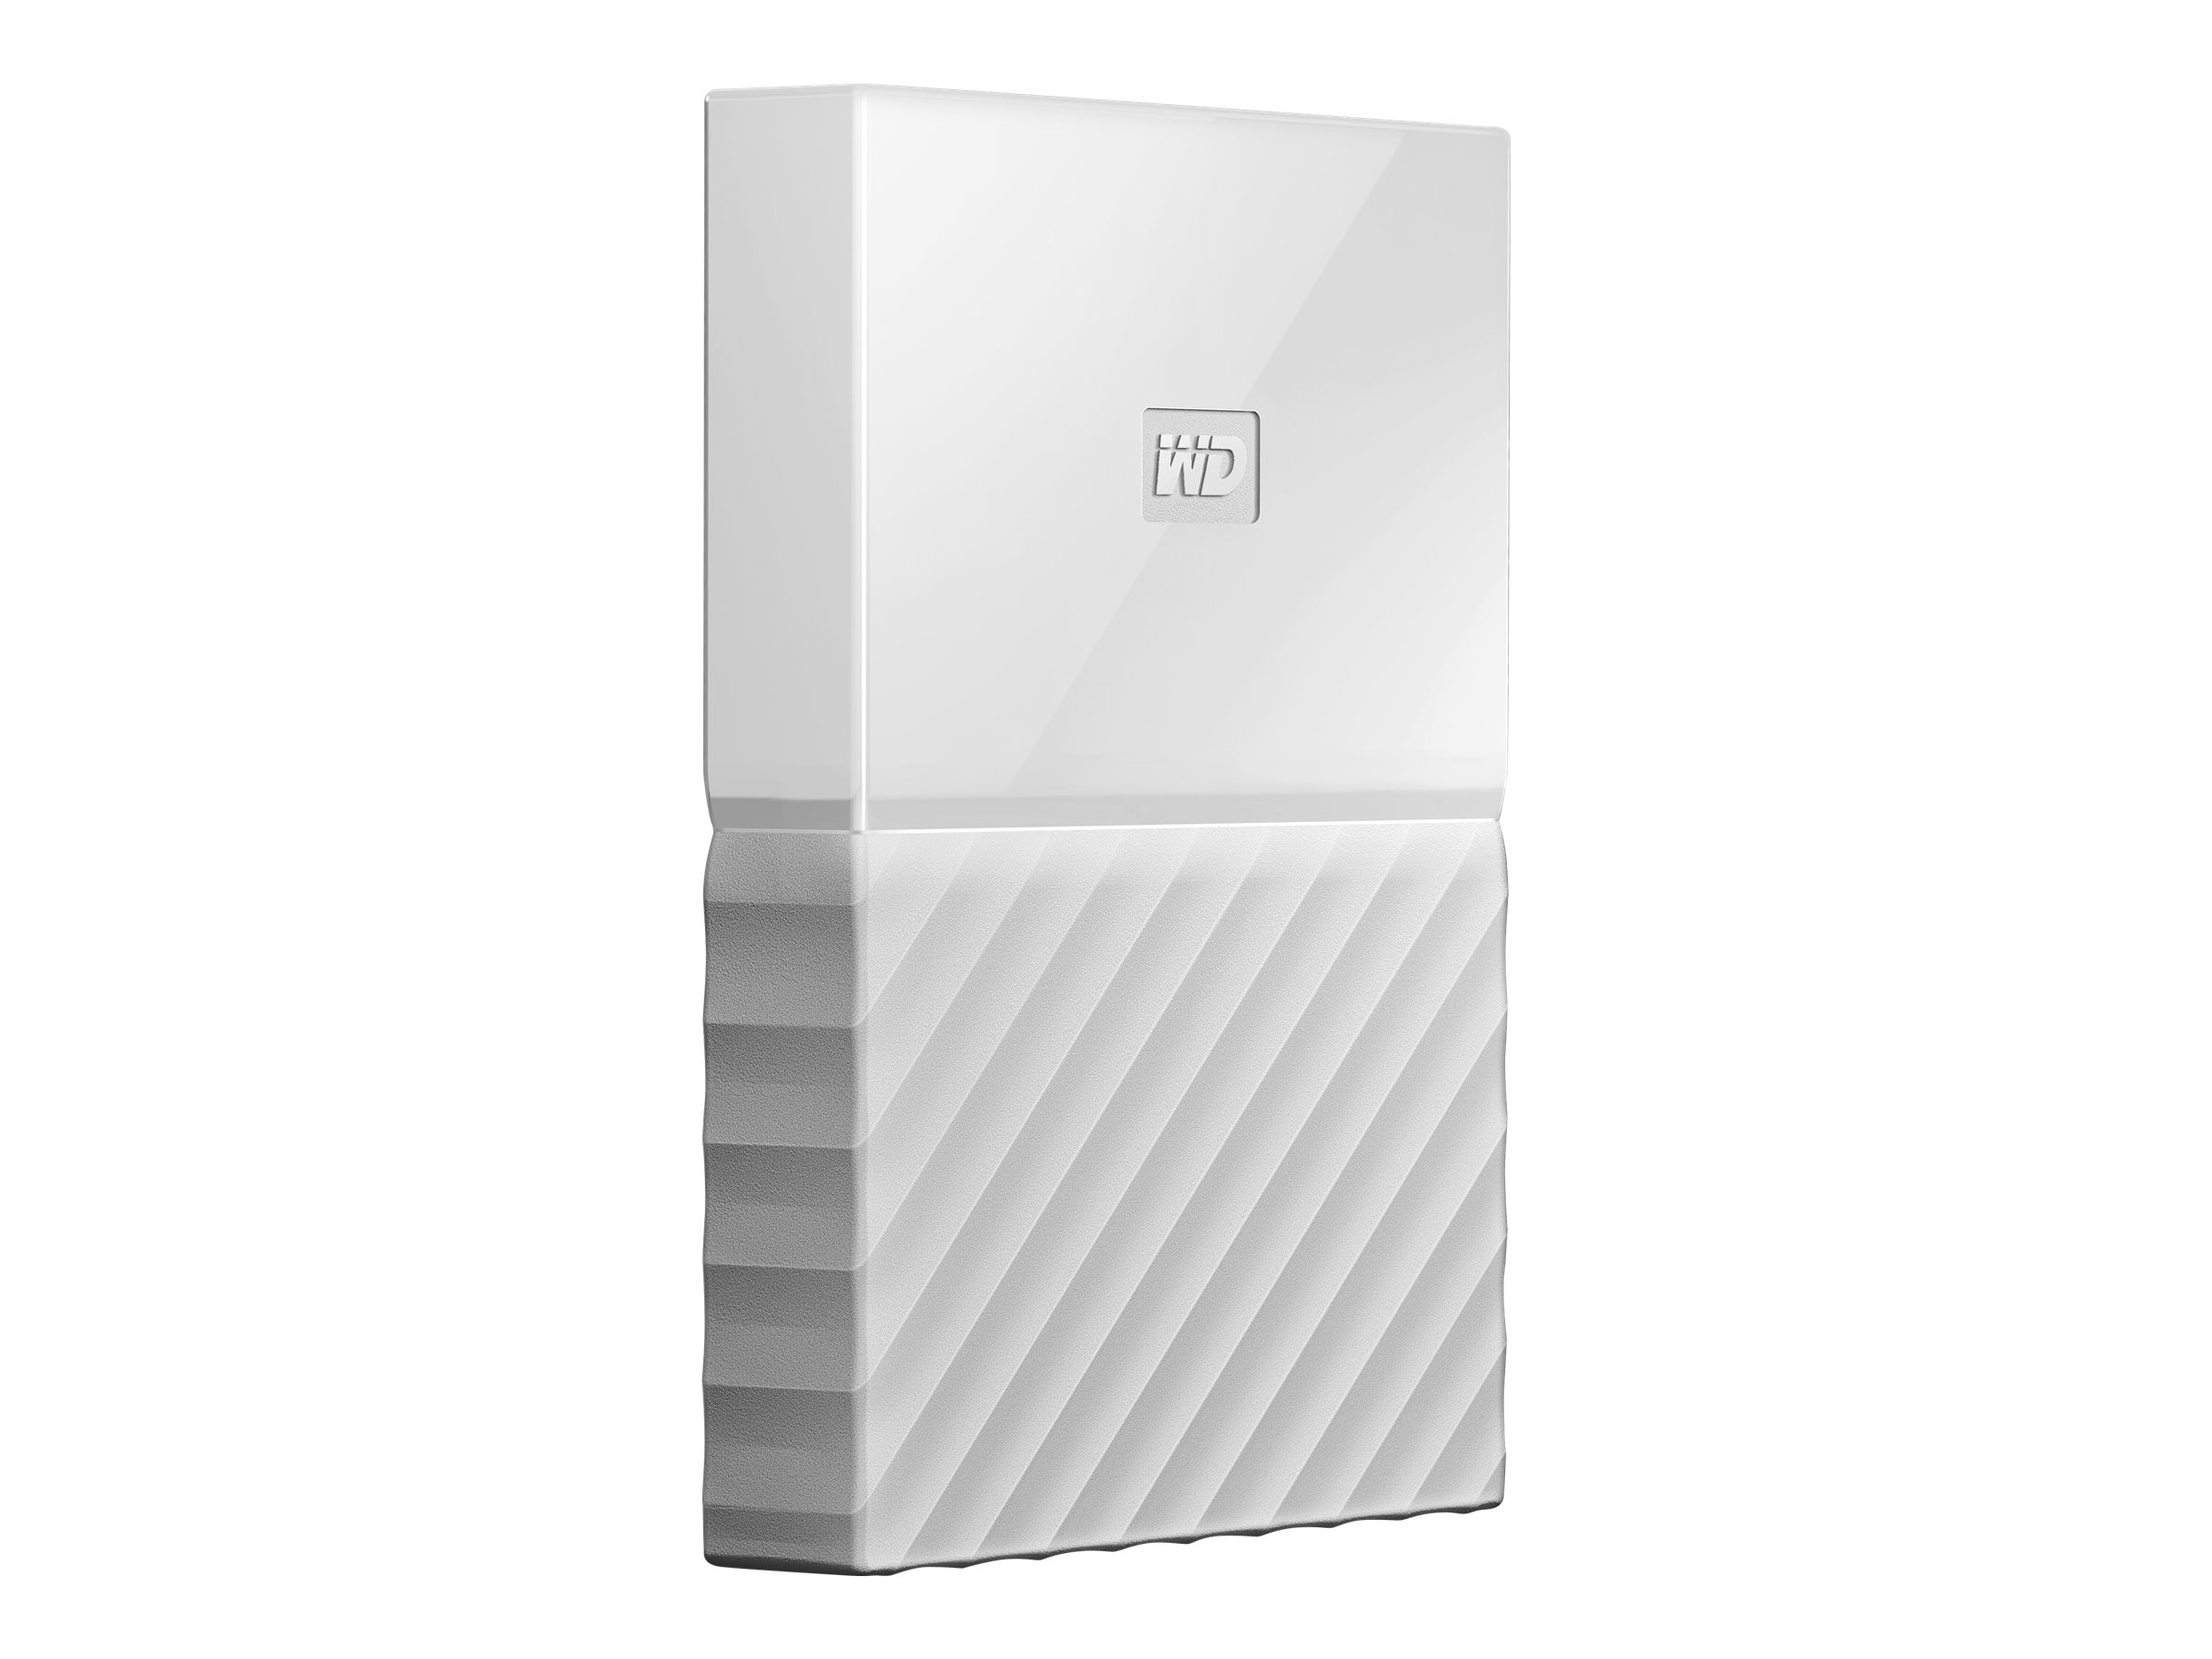 WD 2TB My Passport USB 3.0 Portable Hard Drive - White, WDBYFT0020BWT-WESN